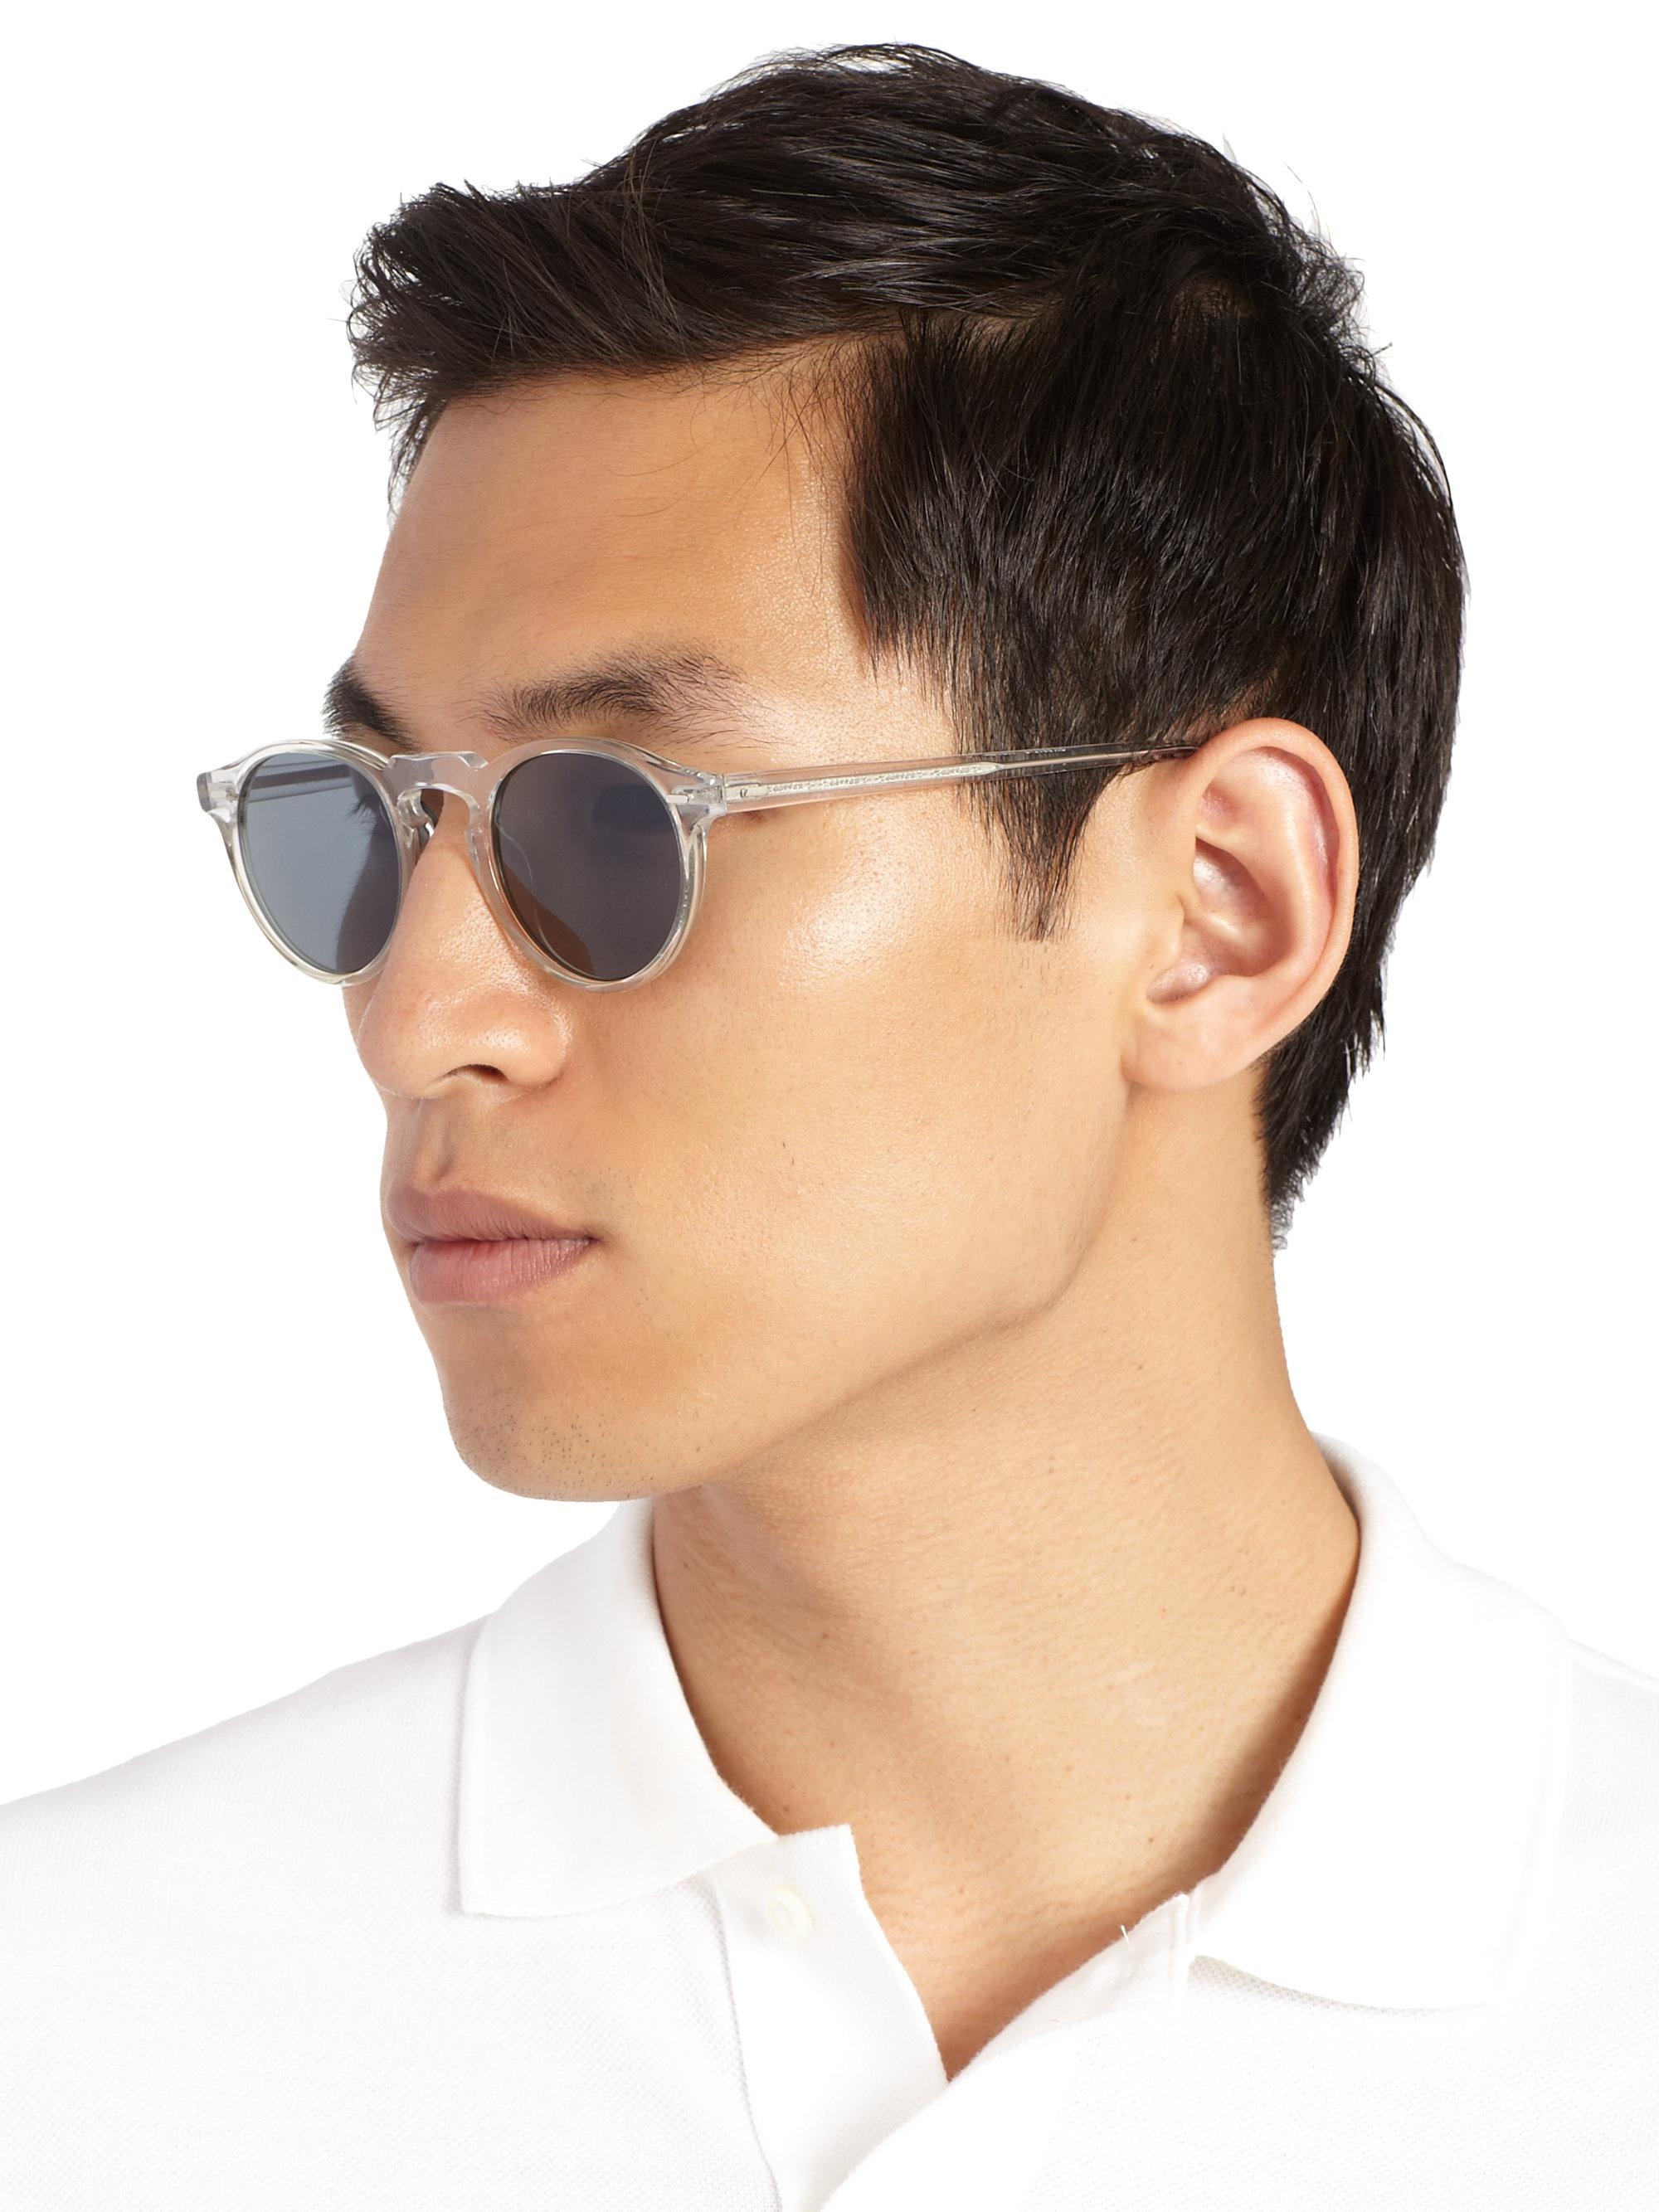 d4cf120adaa Oliver Peoples - Gray Men s Gregory Peck 47mm Acetate Sunglasses - Lucite  for Men - Lyst. View fullscreen